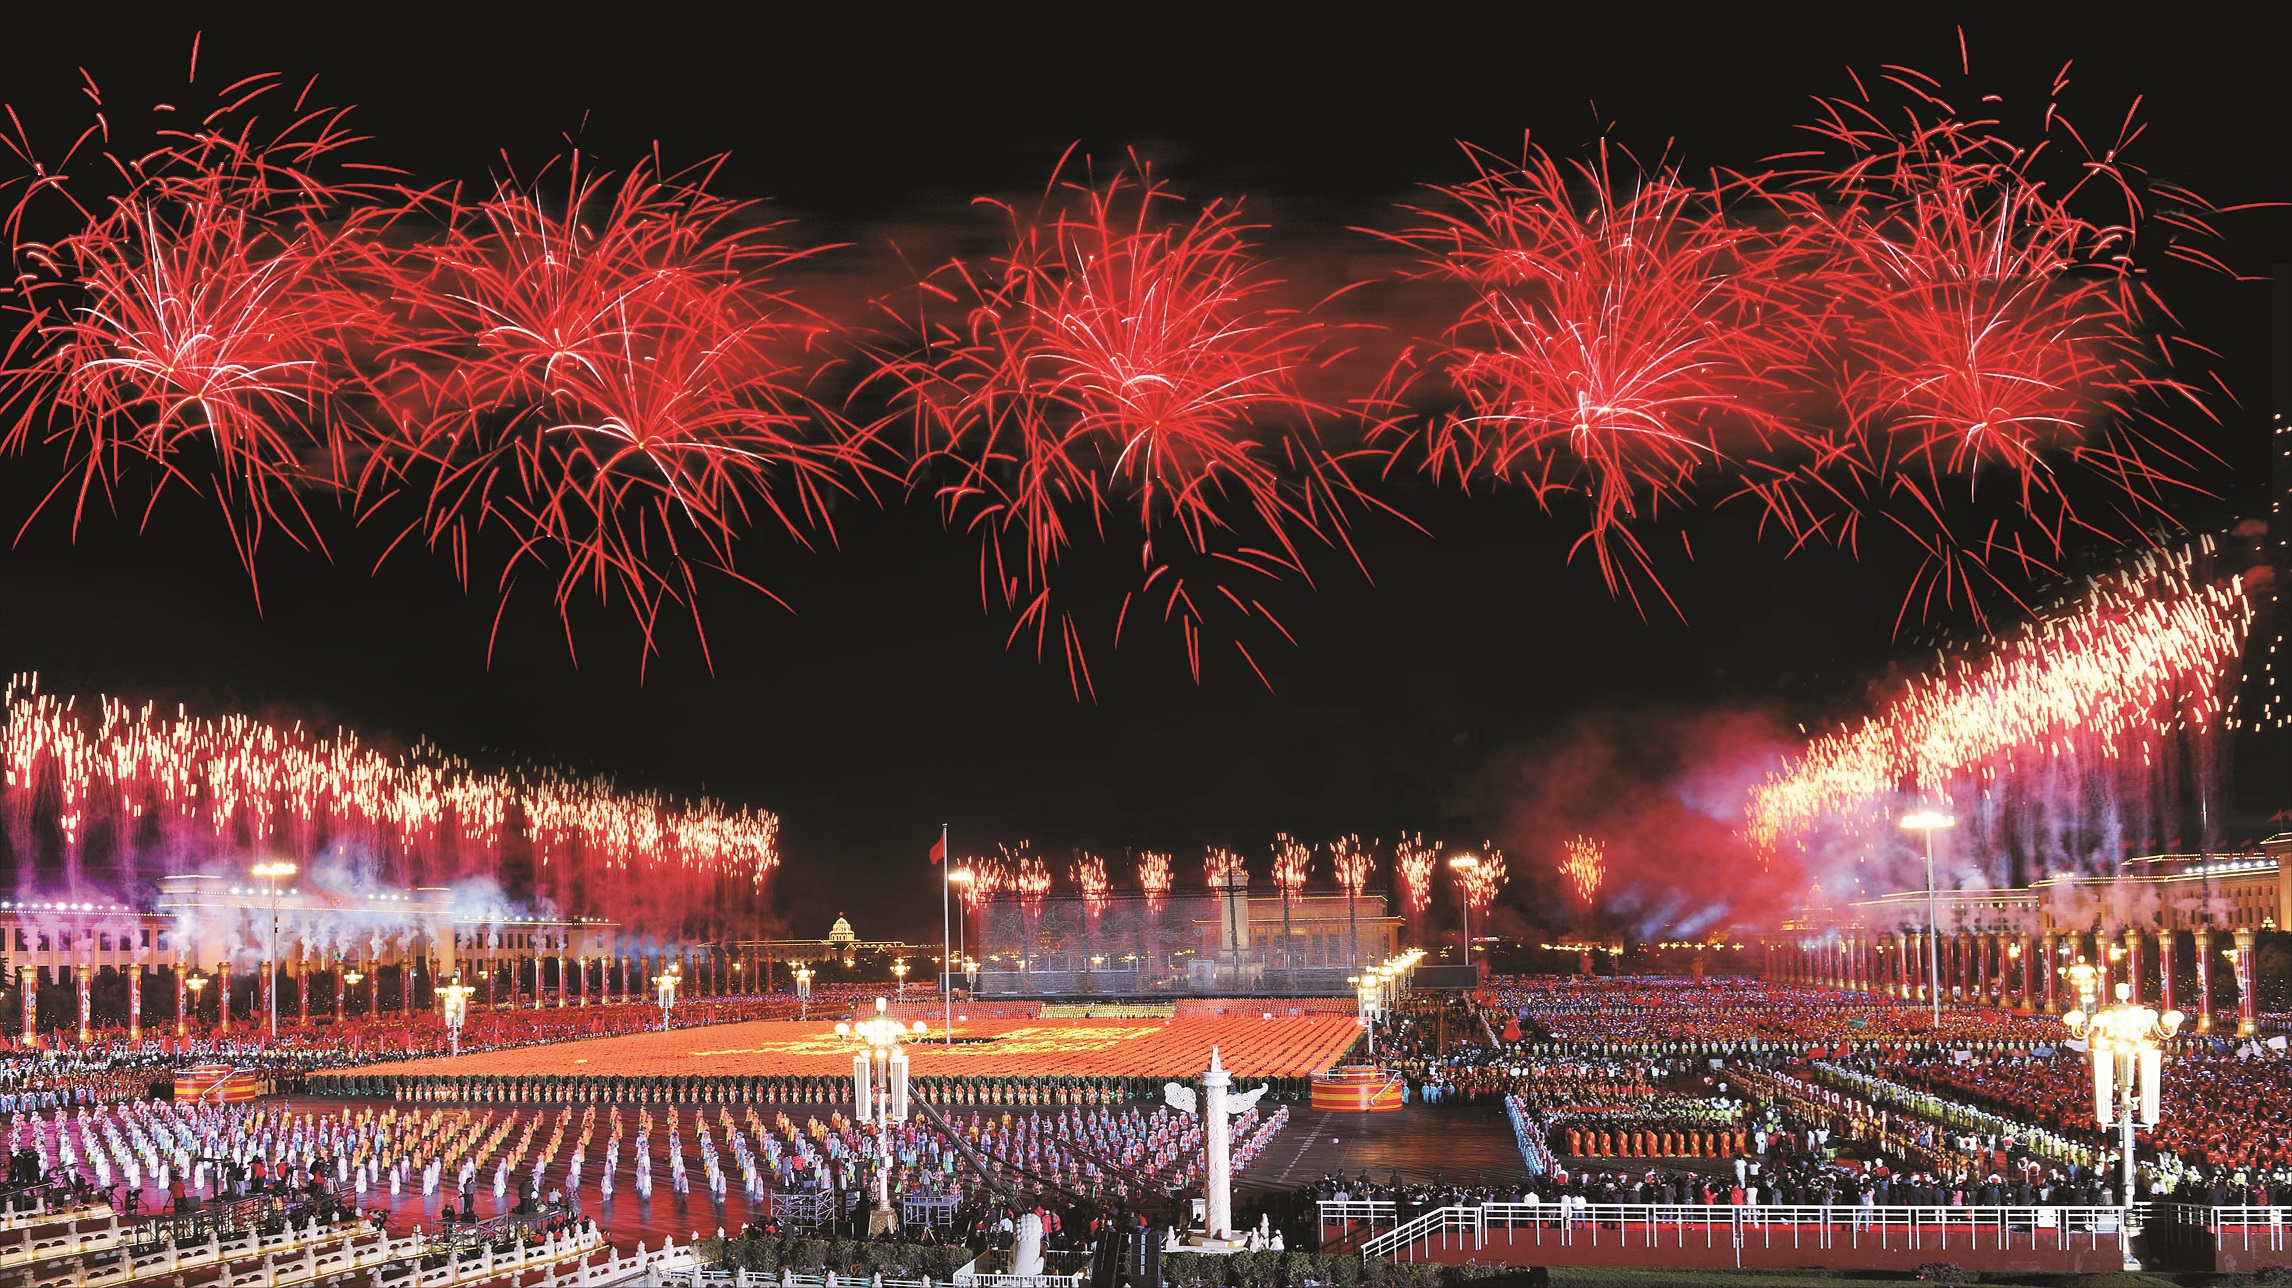 2009 60TH ANNIVERSARY OF NATIONAL DAY